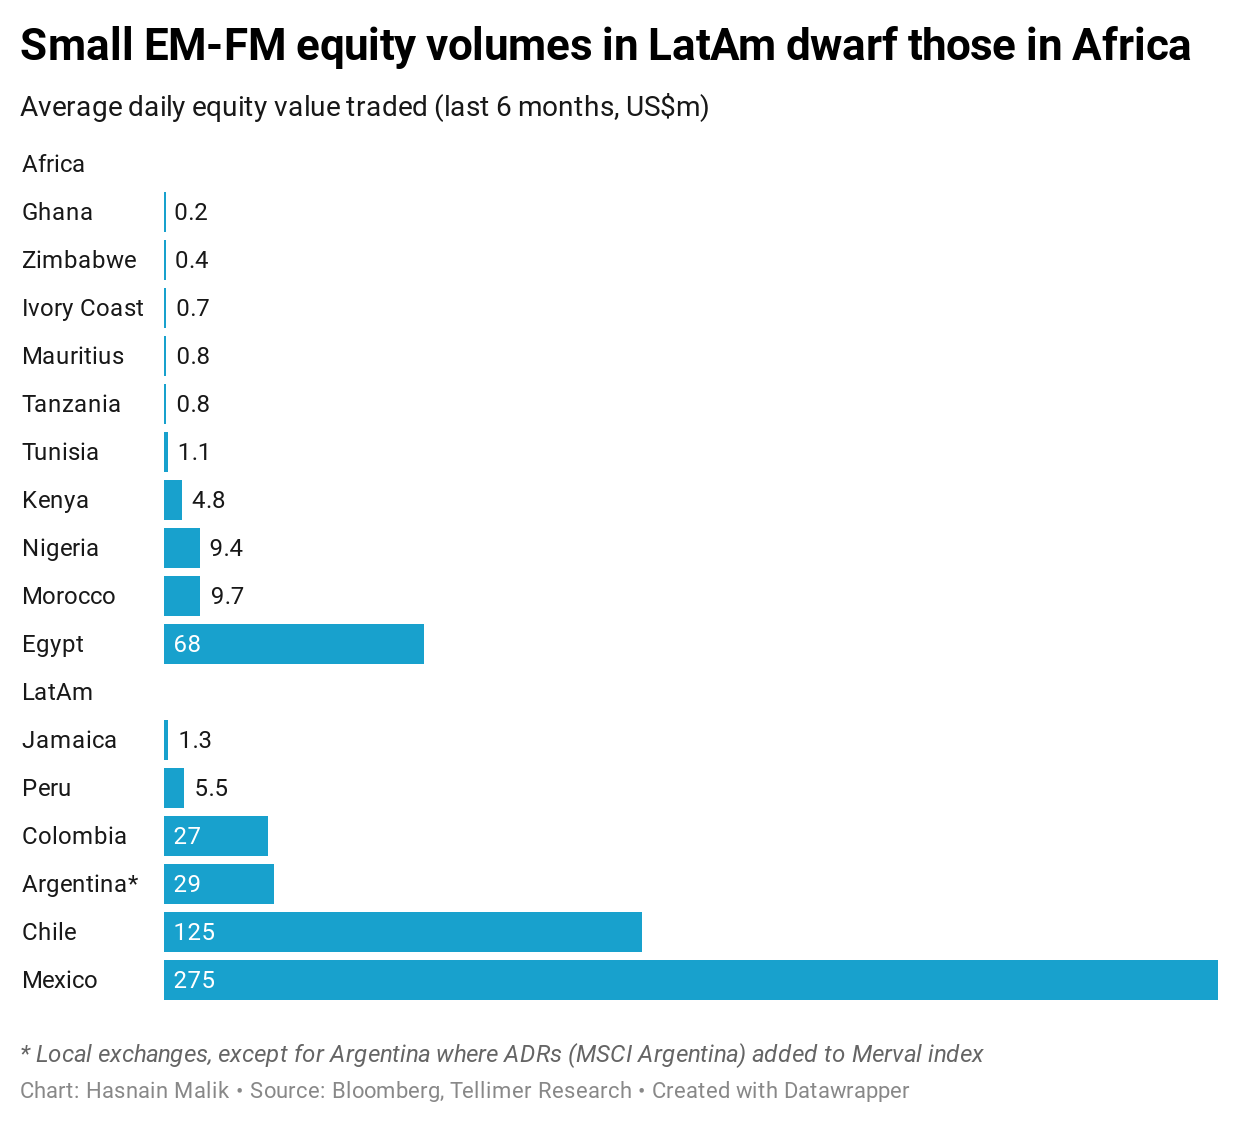 Small EM-FM equity volumes in LatAm dwarf those in Africa